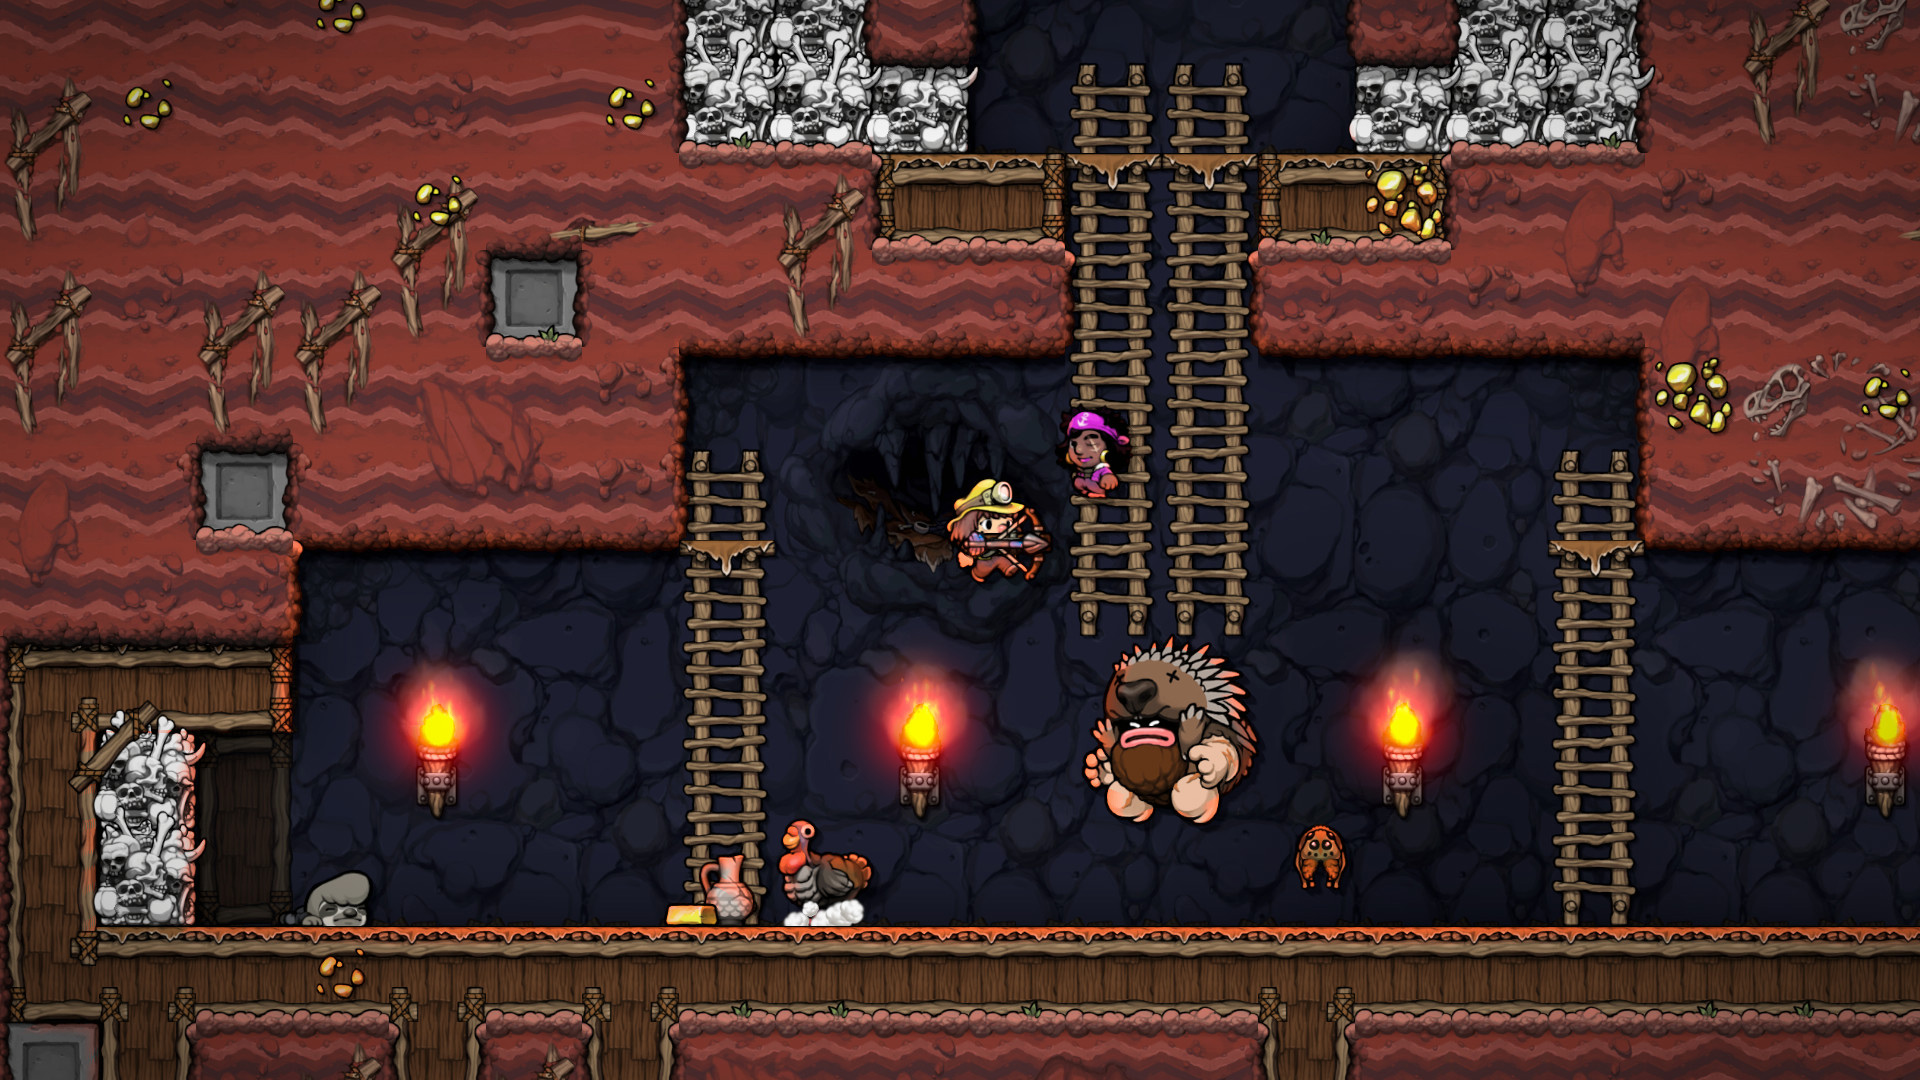 Spelunky 2 players will need to wait until September 29 for the Steam release screenshot